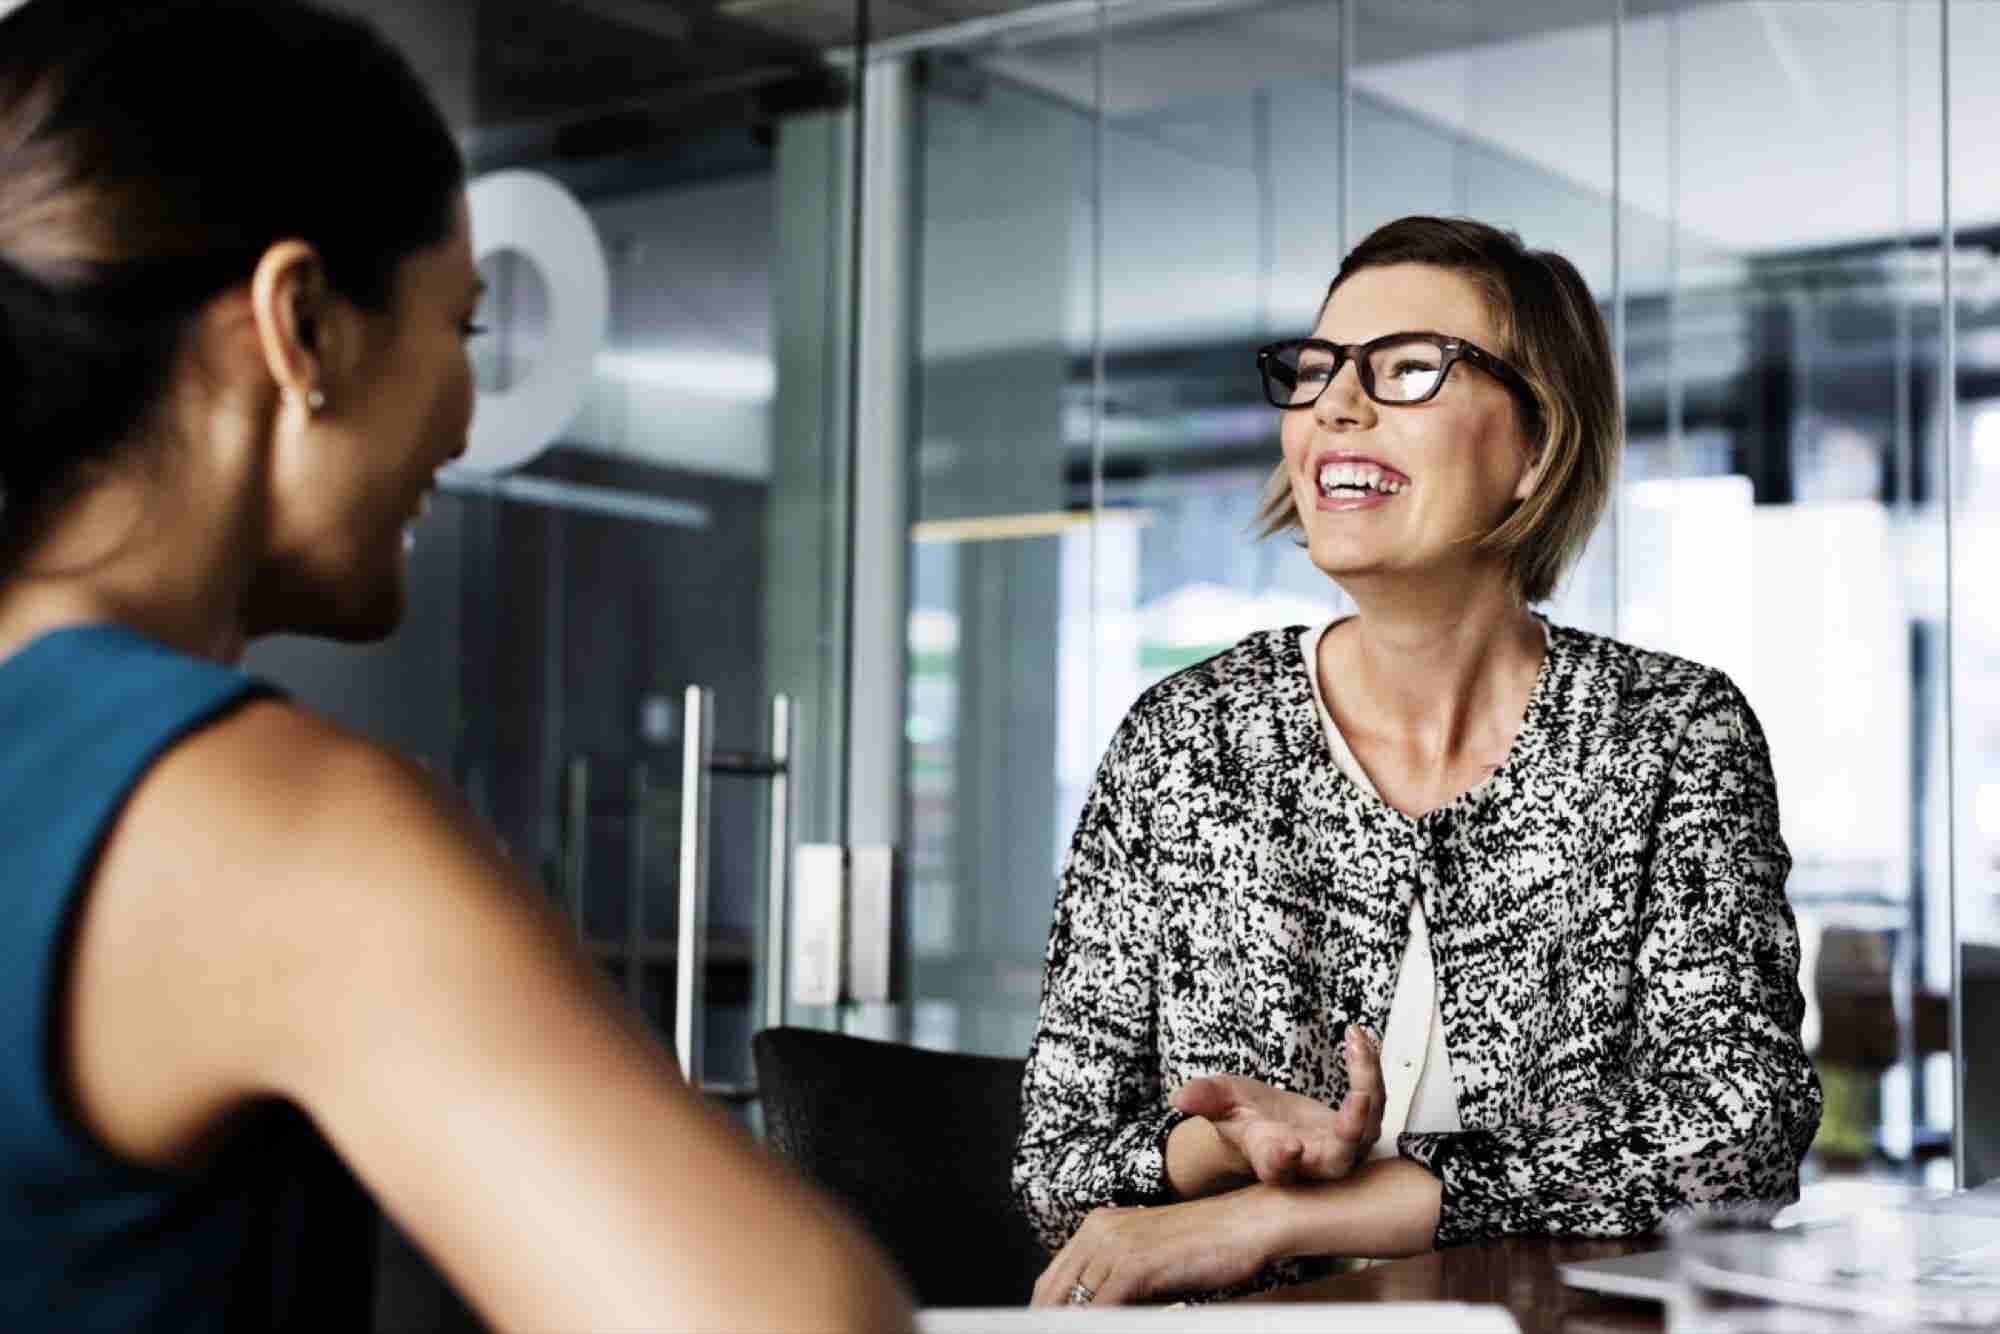 Employee Feedback Is Only Effective If It's Done Right. Here's How to Make Sure It Lands.